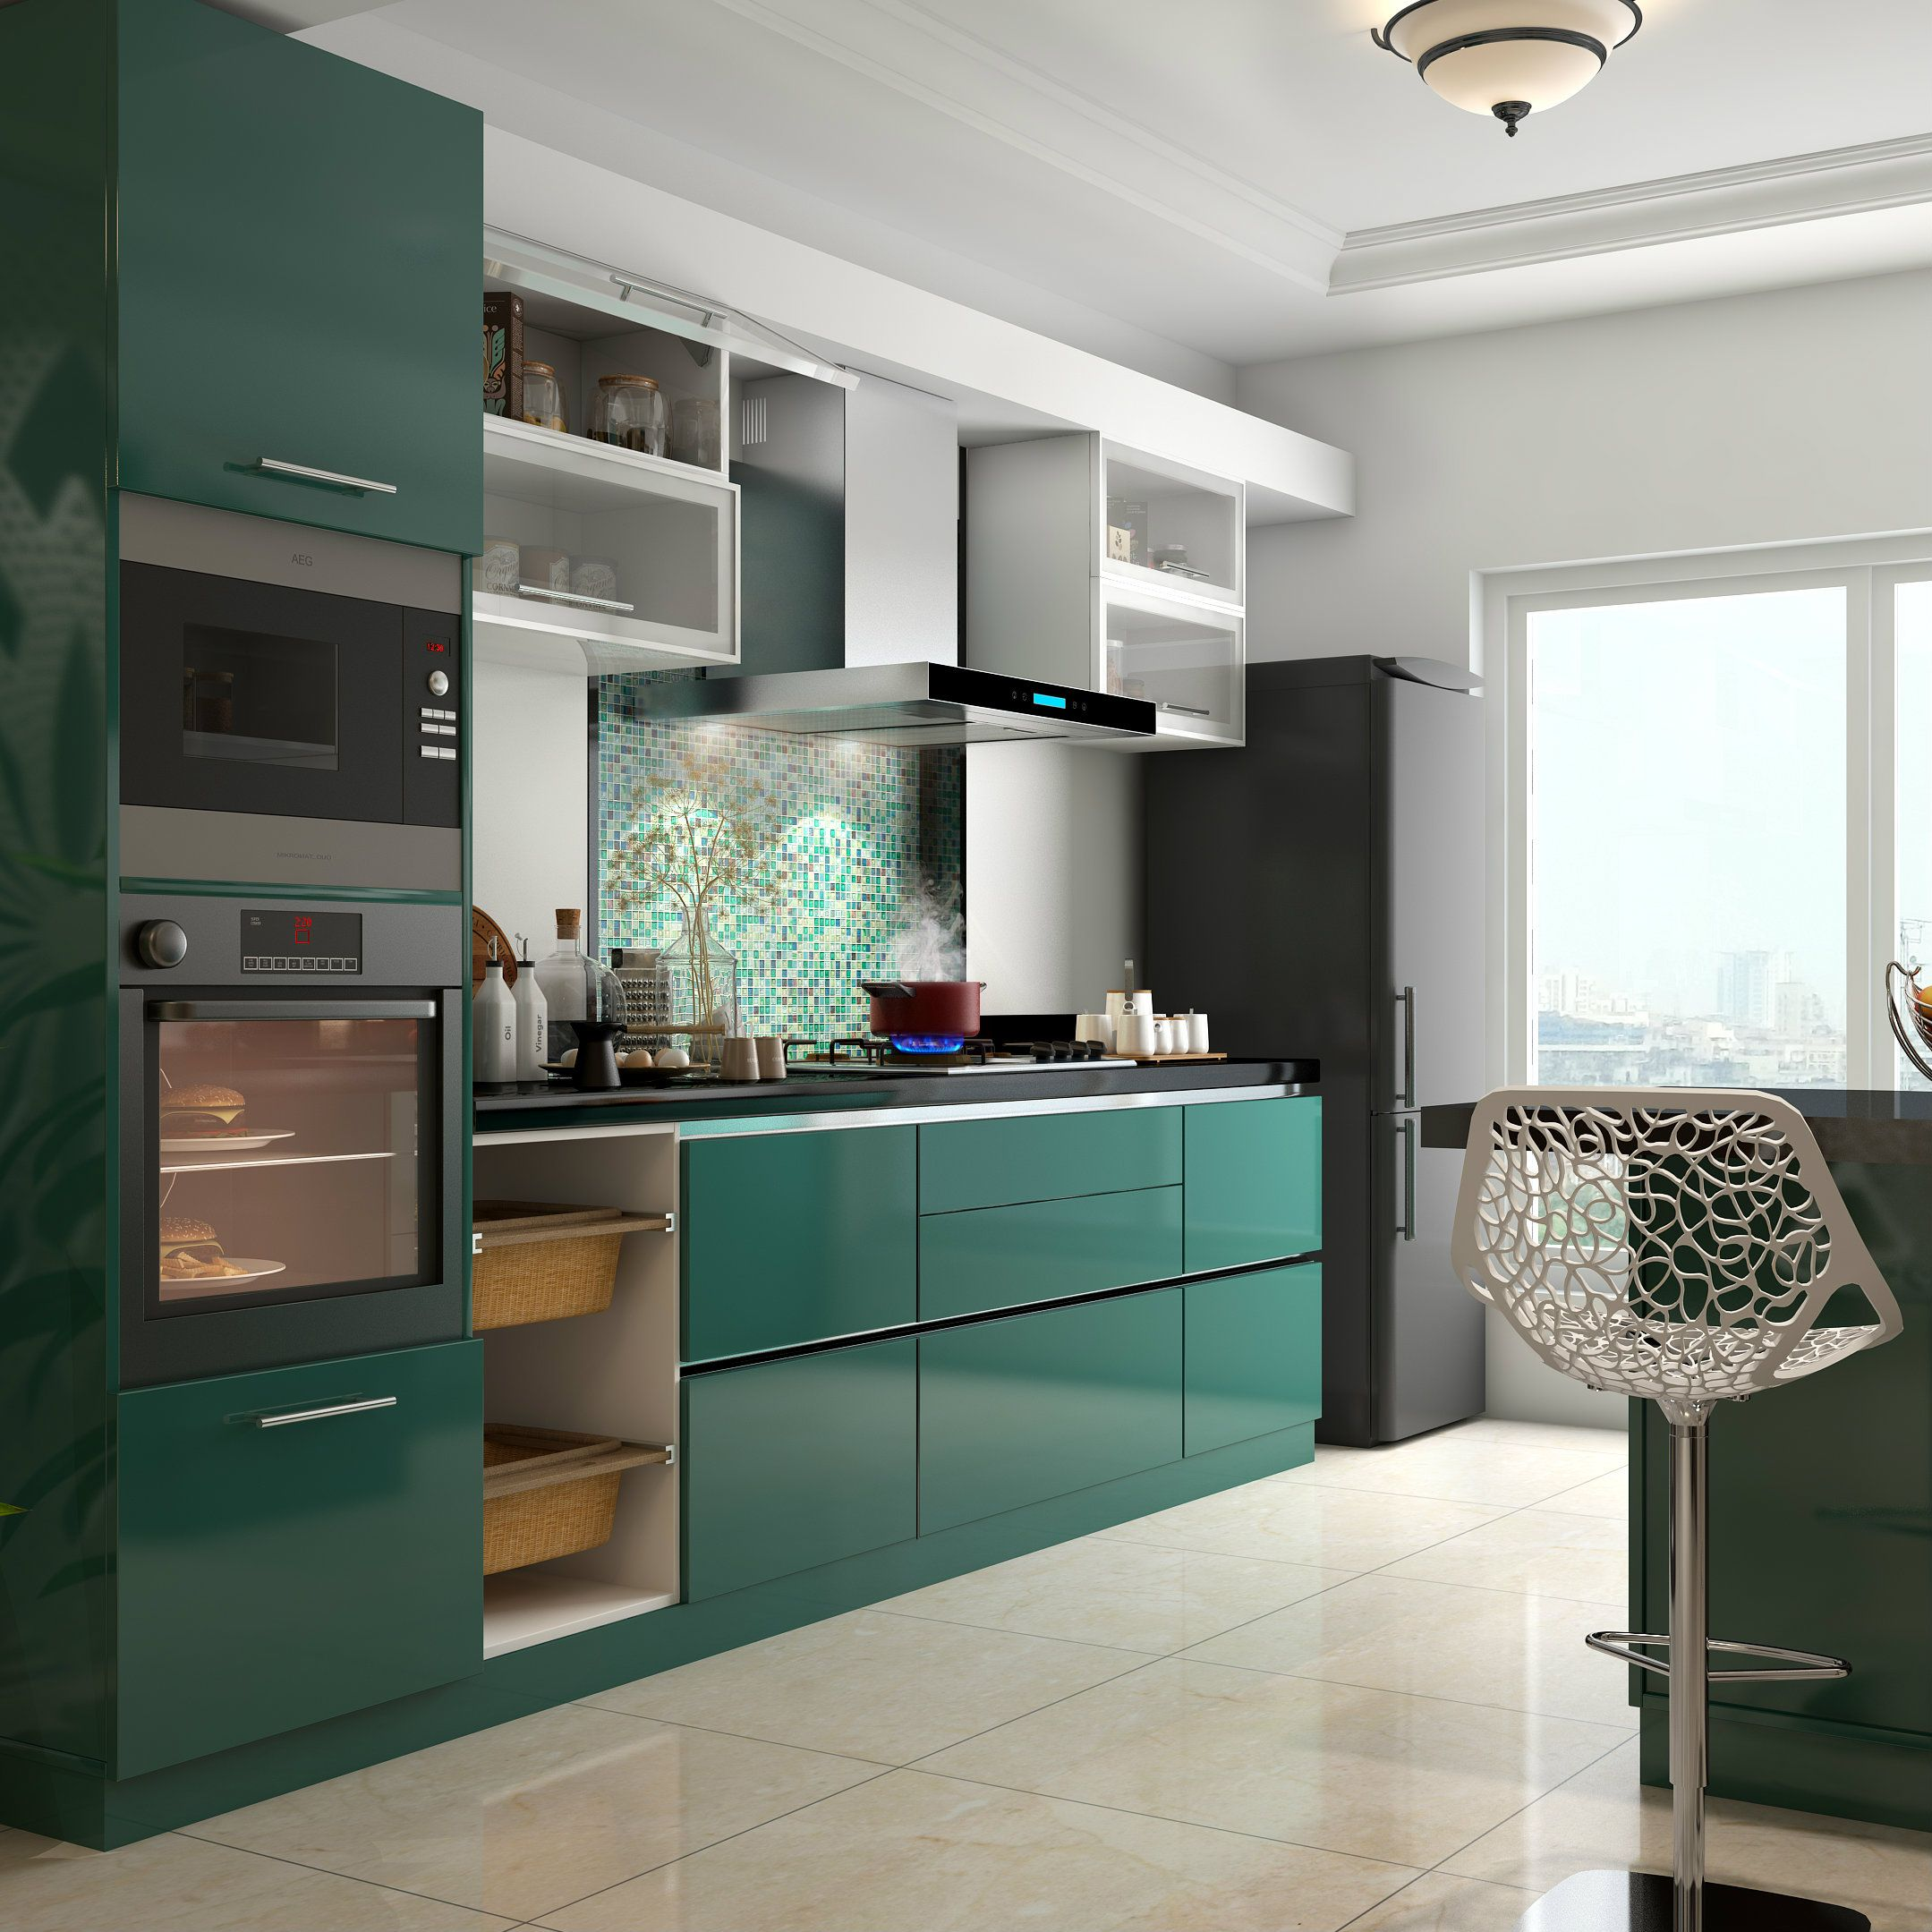 Best Glossy Green Cabinets Infuse Vitality To This Kitchen 640 x 480